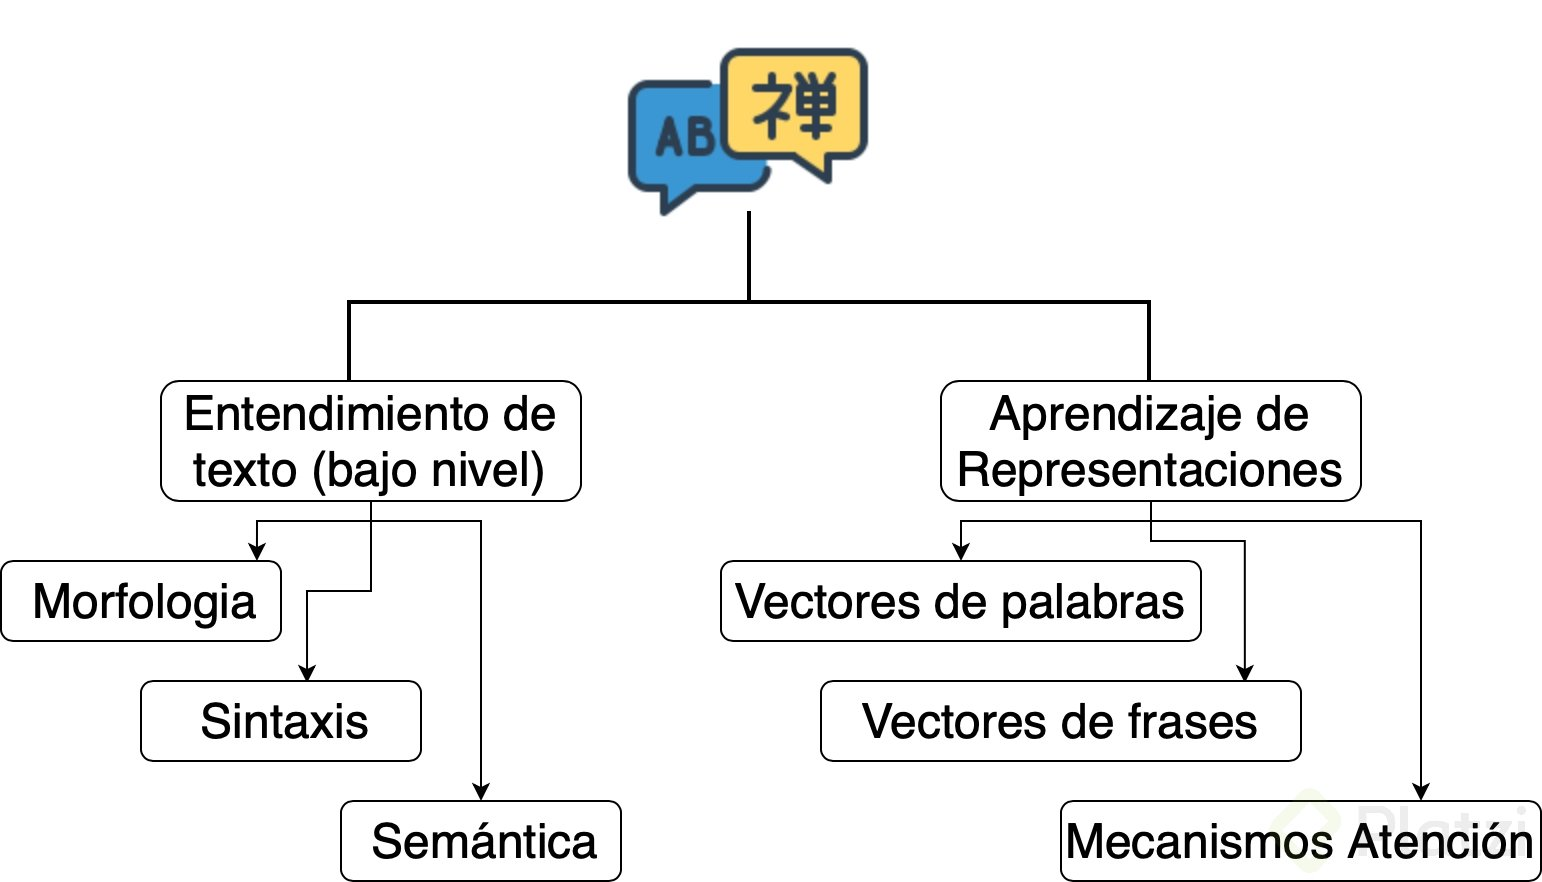 NLP_diagrams_class_1-Page-0.png